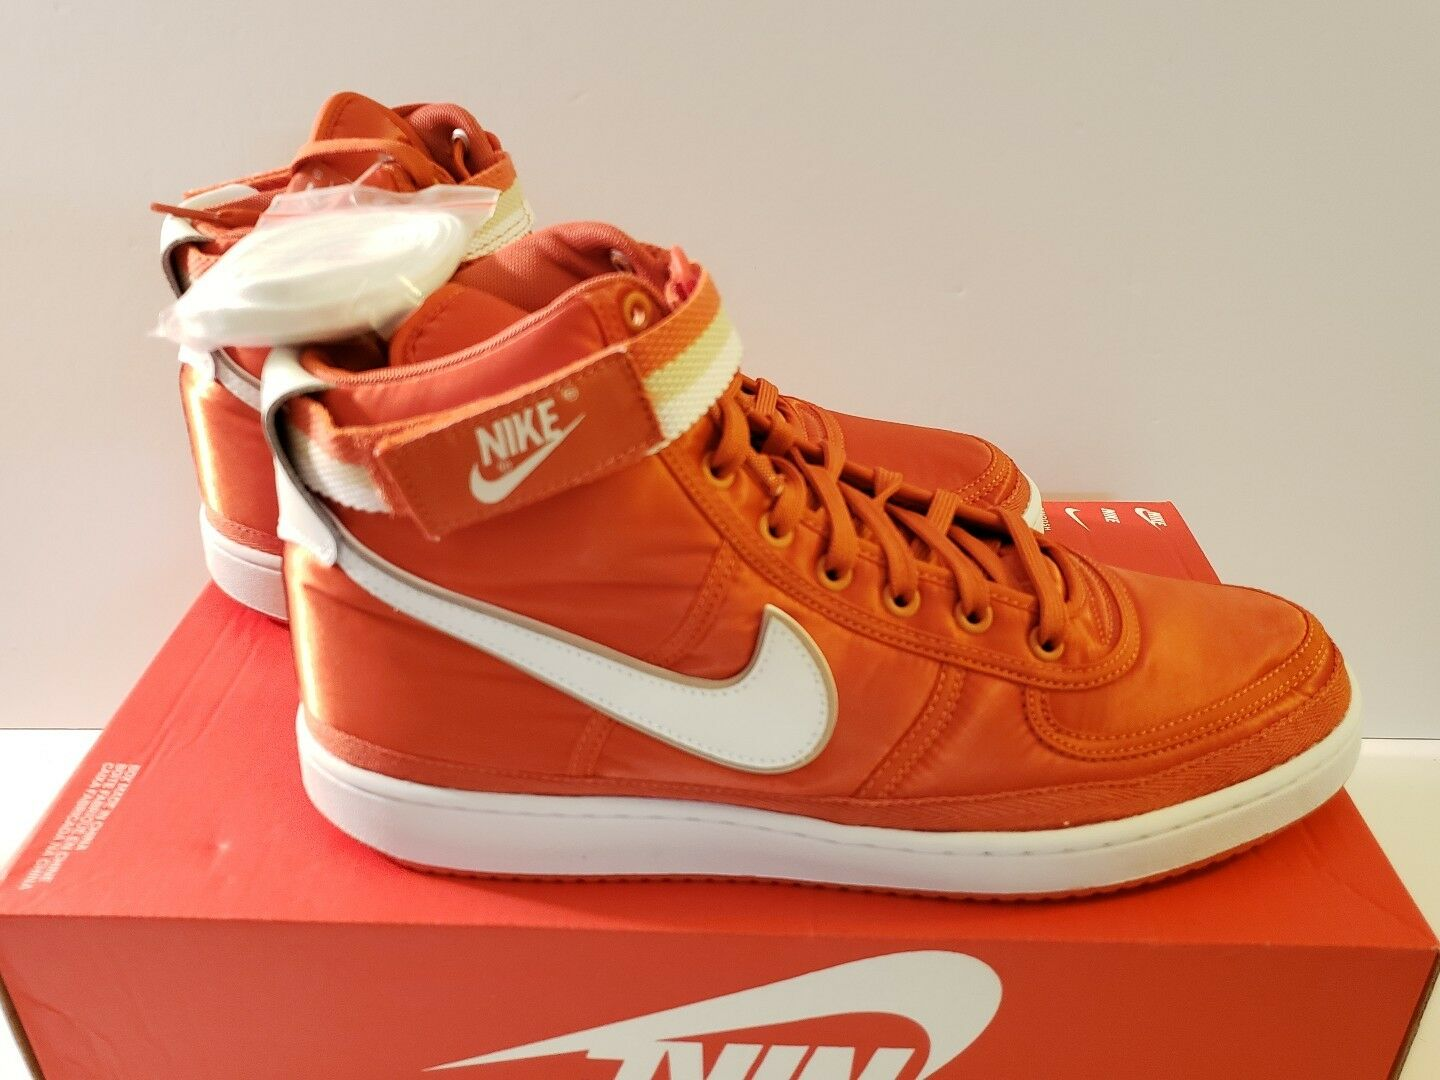 Nike Vandal High Supreme Sz 10.5, 11 & 11.5 Vintage Coral Men's Retro 318330-800